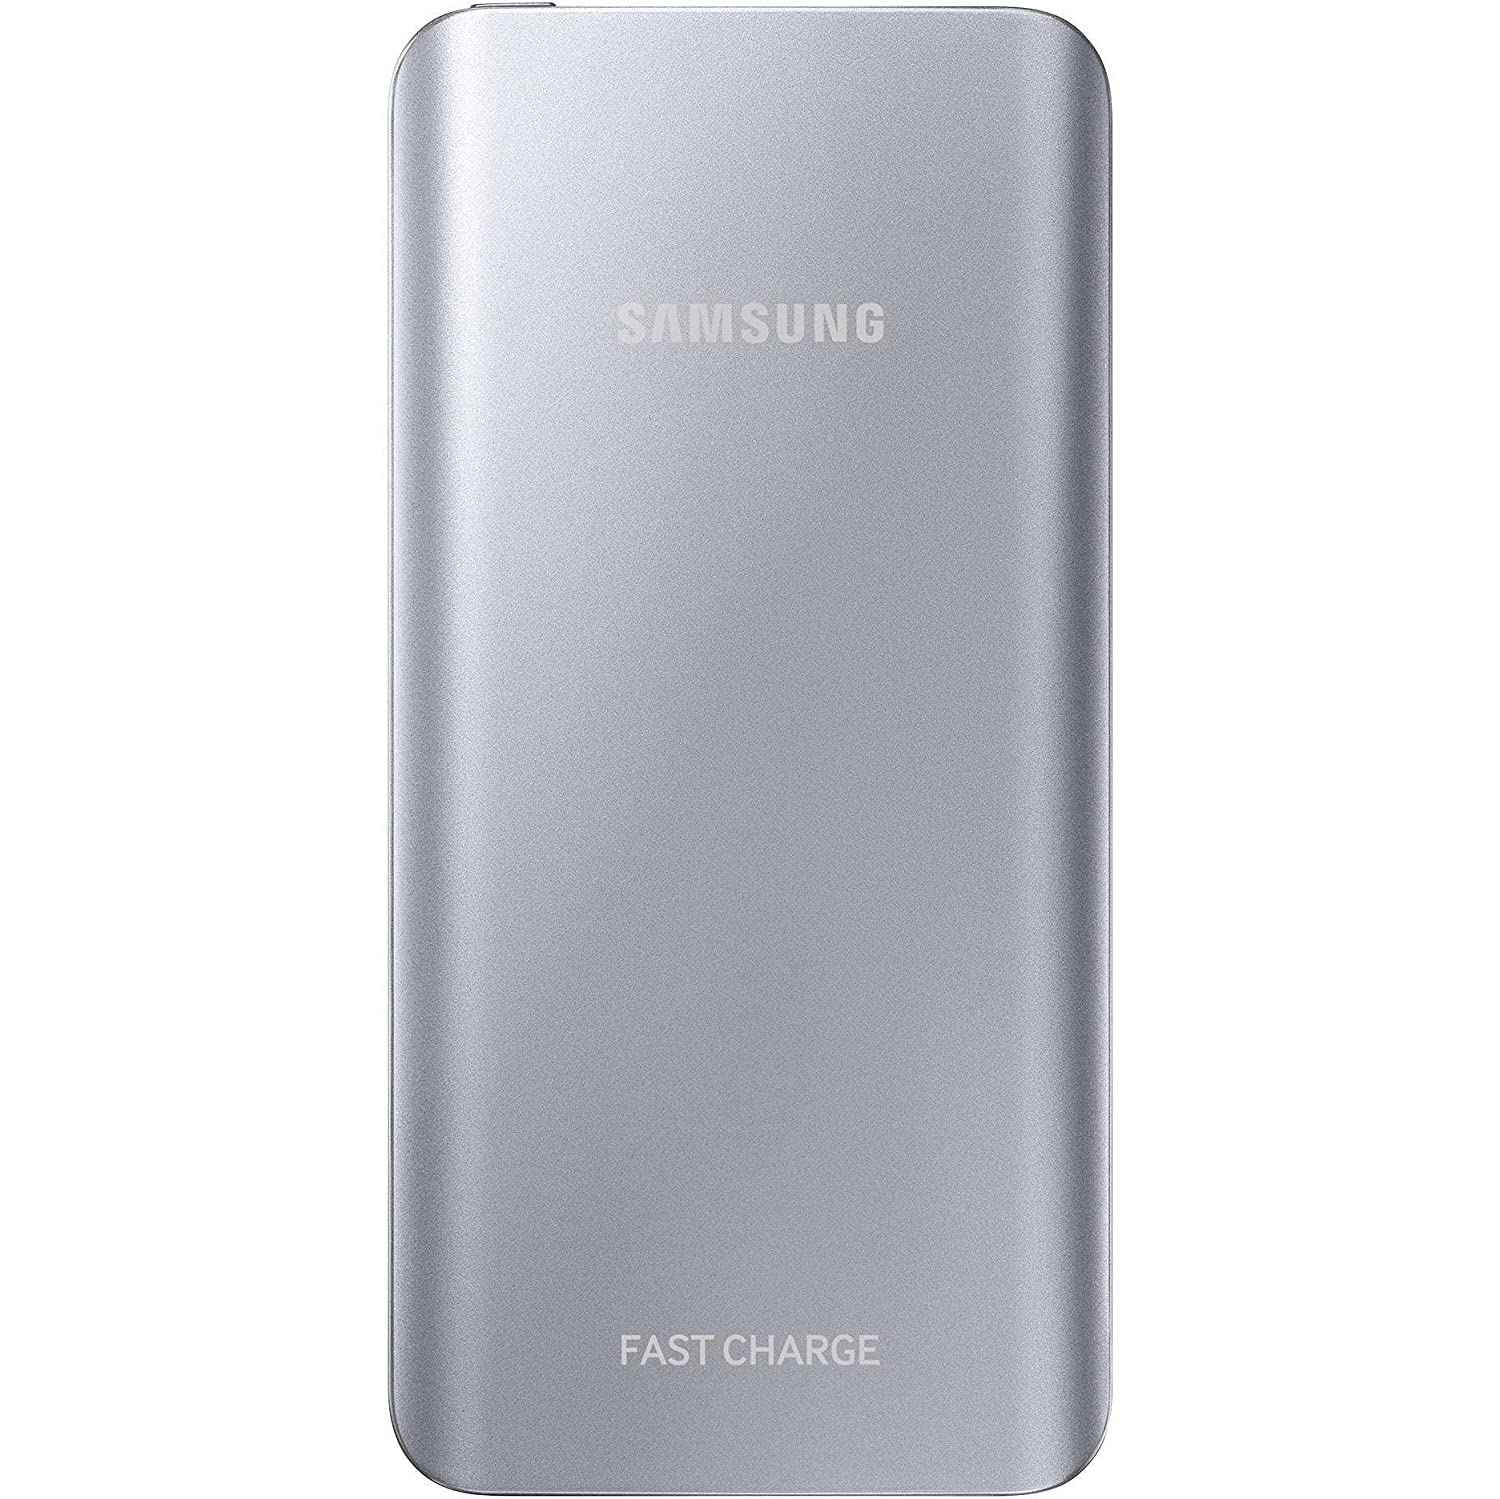 Samsung Eb Pn920useg Rechargeable Portable Battery Pack Amazonco